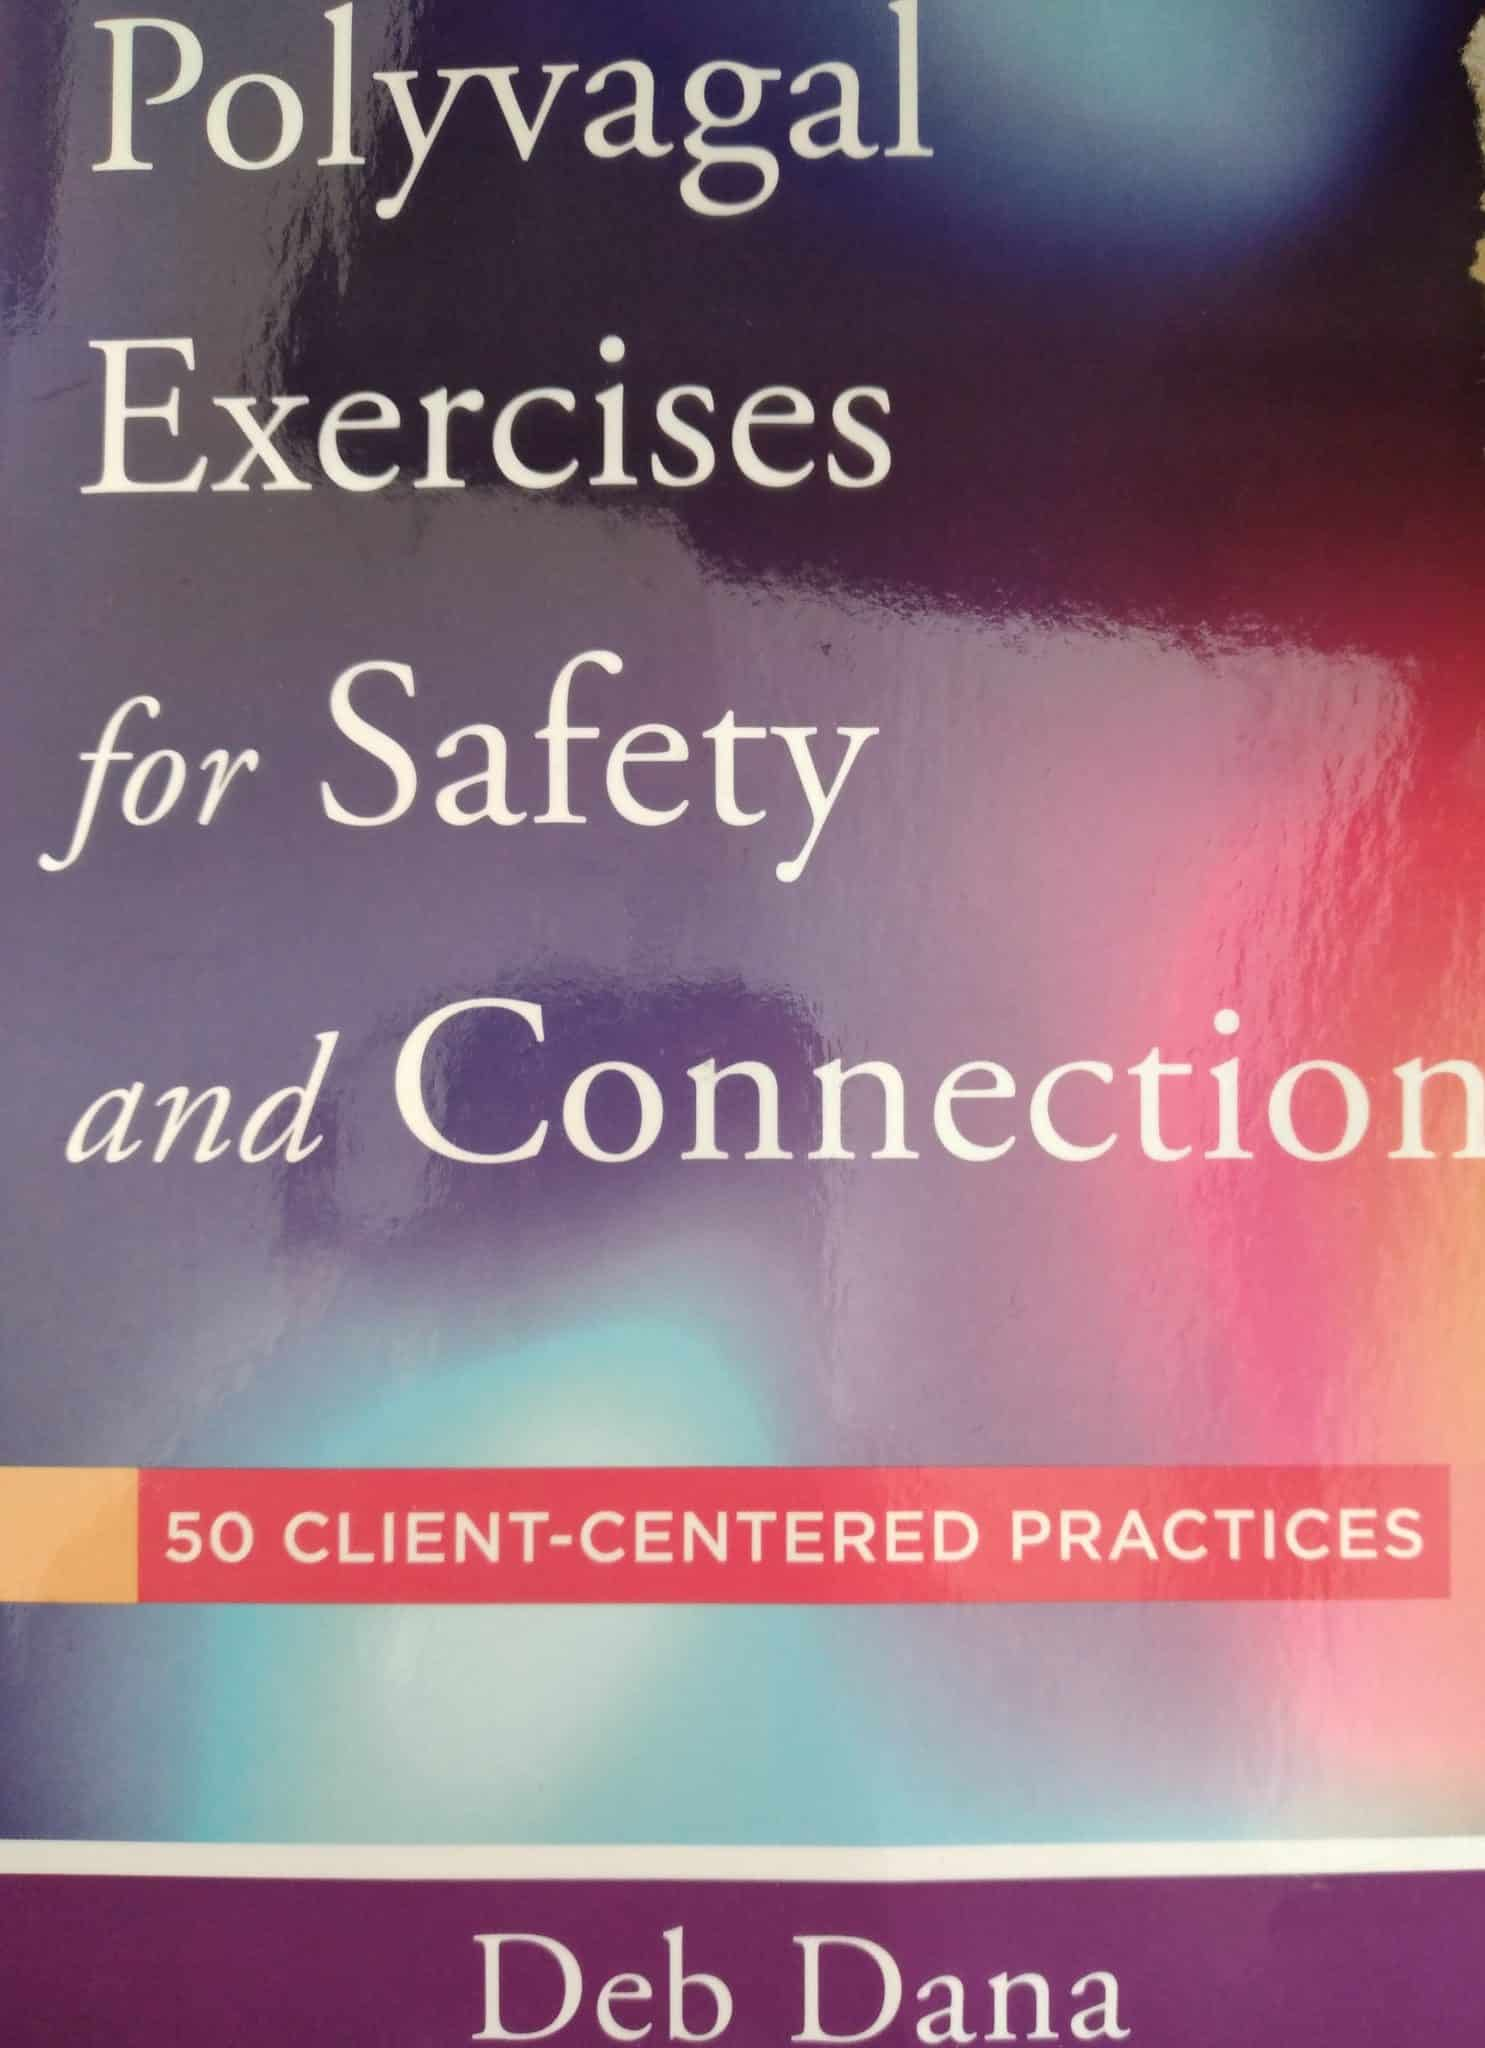 Polyvagal Exercises For Safety And Connection. 50 Client-centered Practices